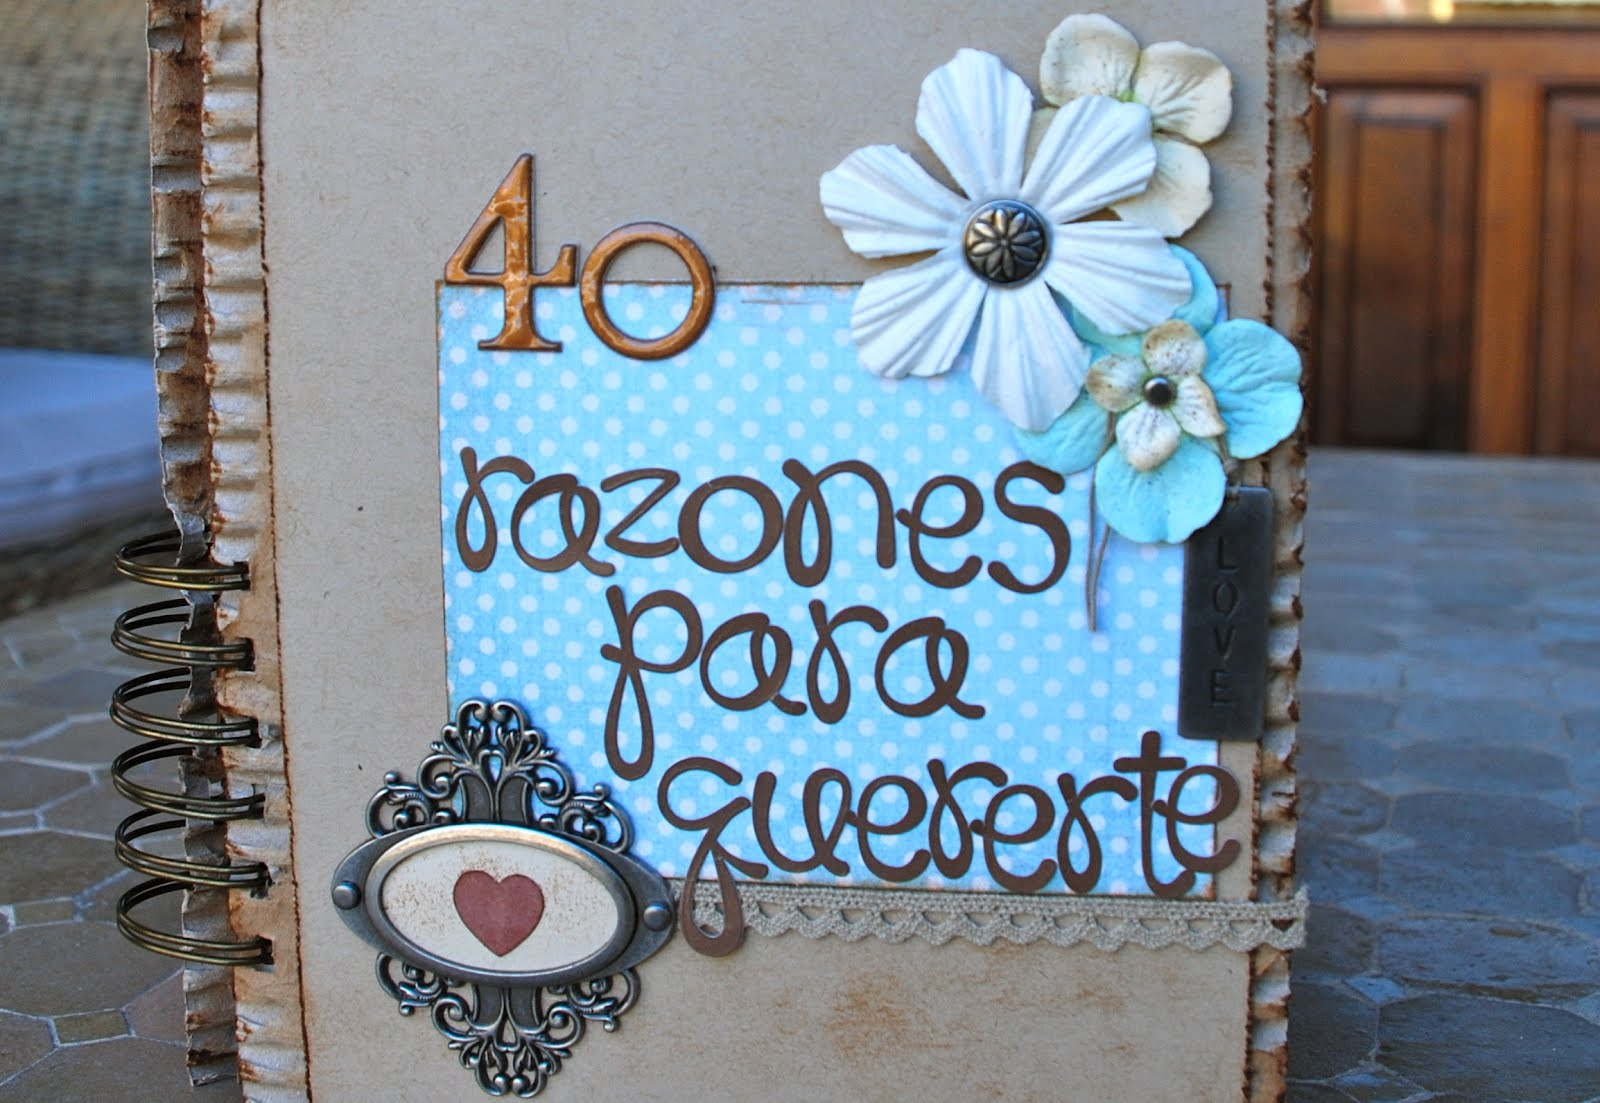 Scrap in love 40 razones son pocas - Ideas para celebrar un cumpleanos de adulto ...